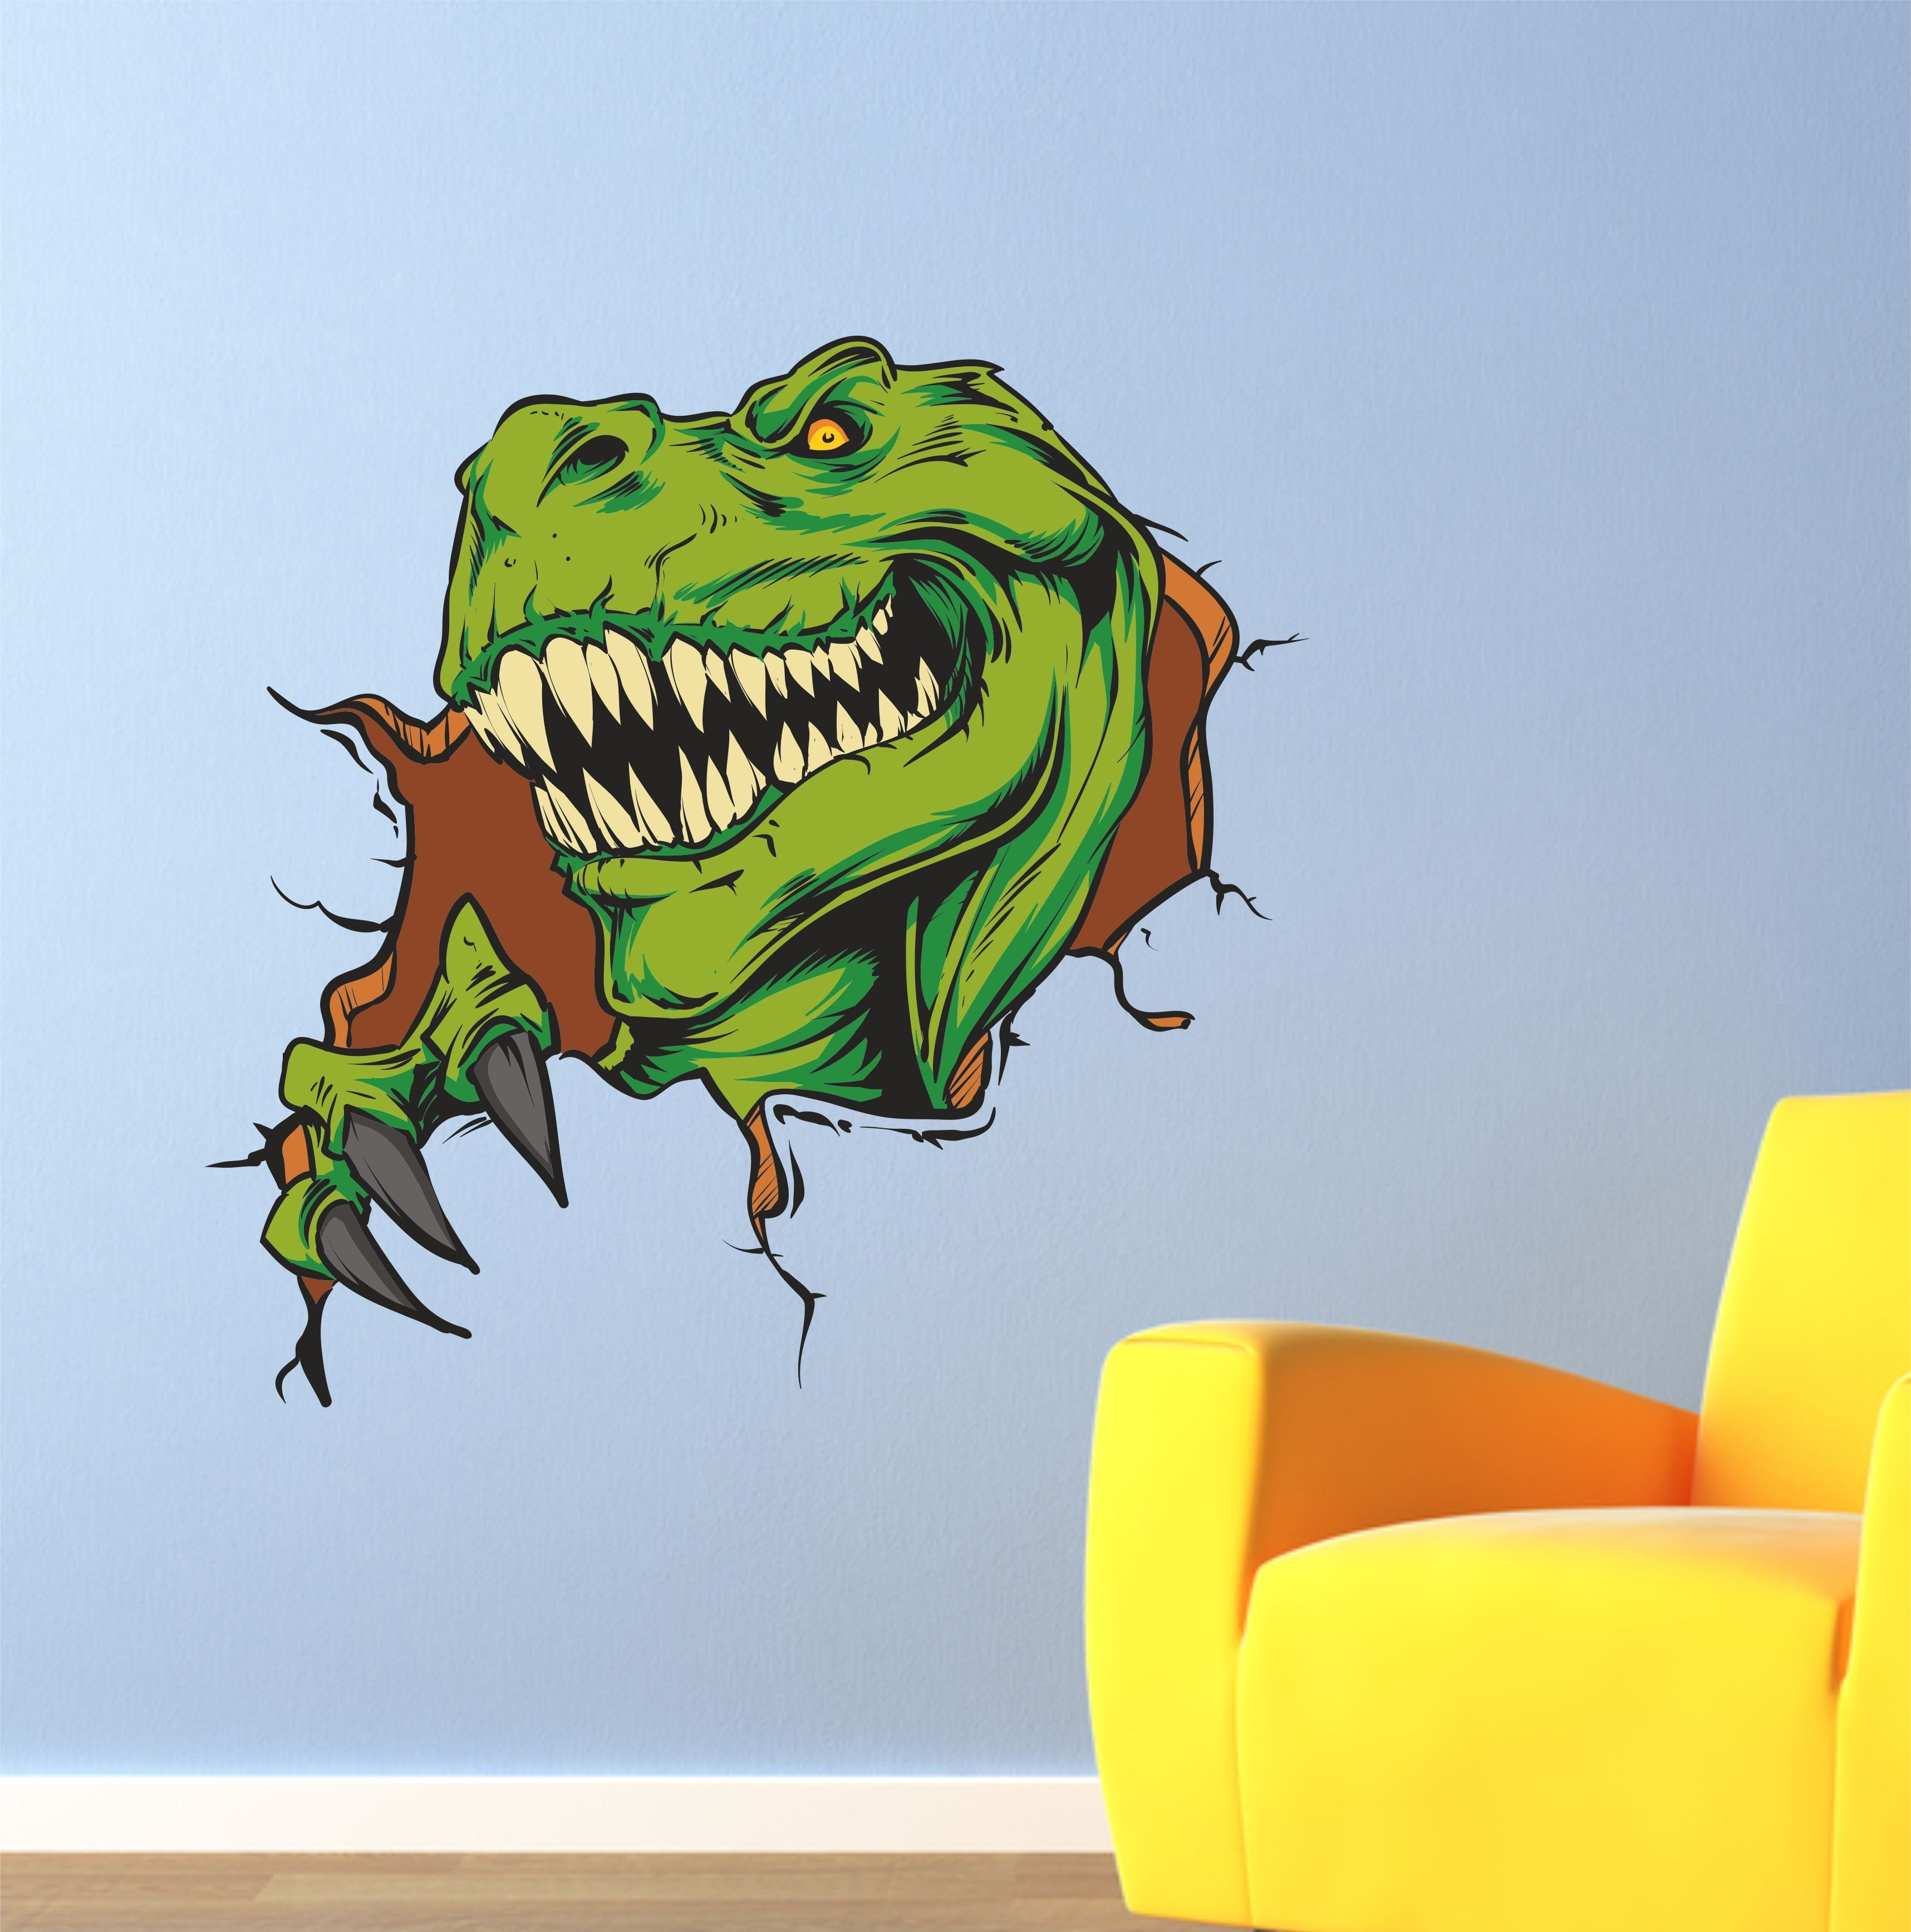 The Grafix Studio | Scary Dinosaur Wall Art Sticker Vinyl With Most Up To Date Dinosaur Wall Art (View 18 of 20)